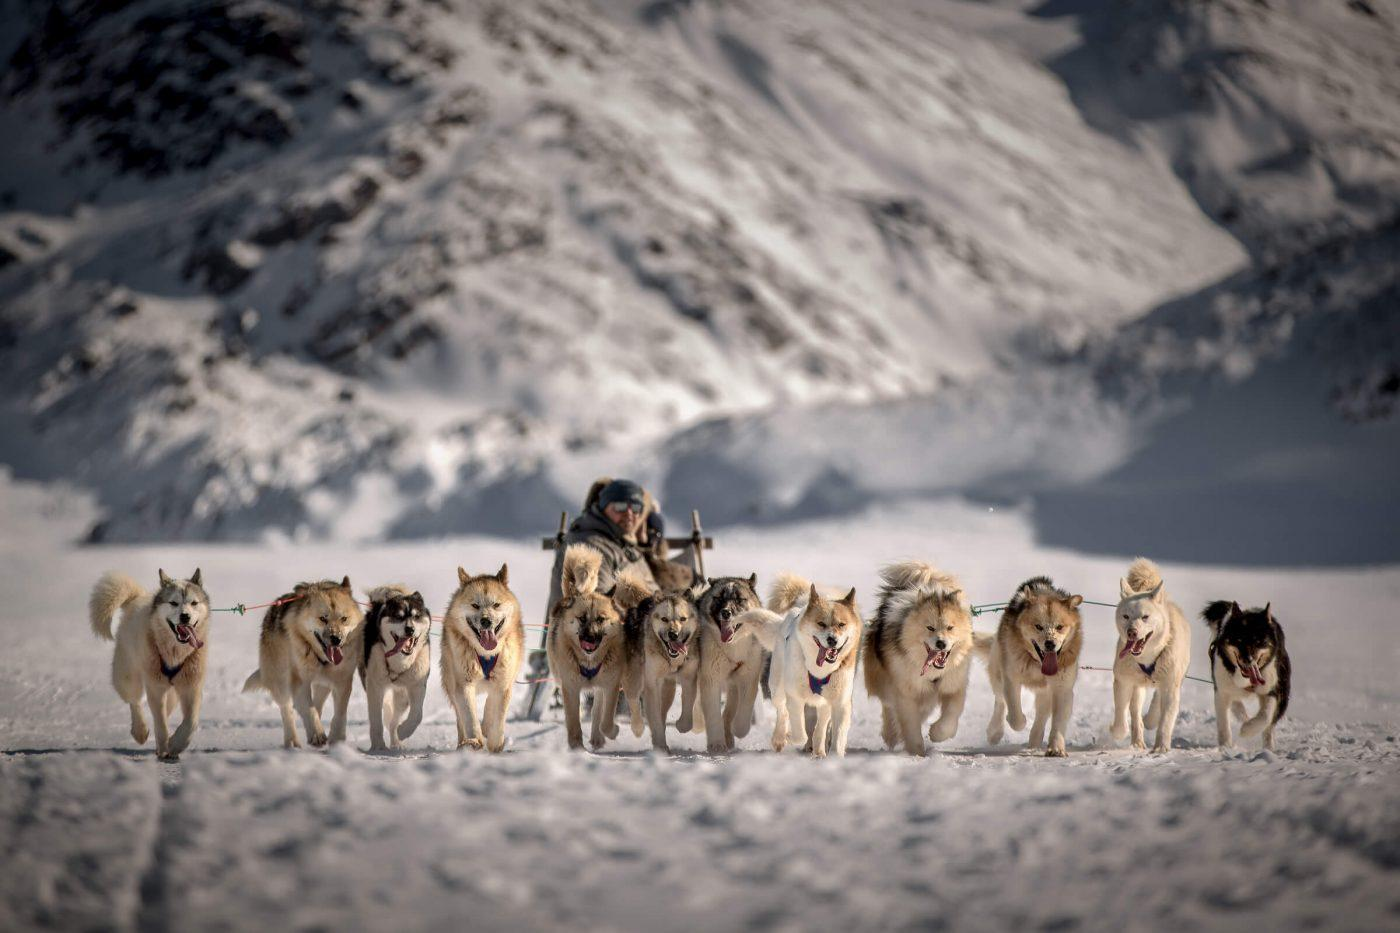 A team of dogs bringing a driver and his guests brack towards Sisimiut in Greenland. Photo by Mads Pihl, Visit Greenland